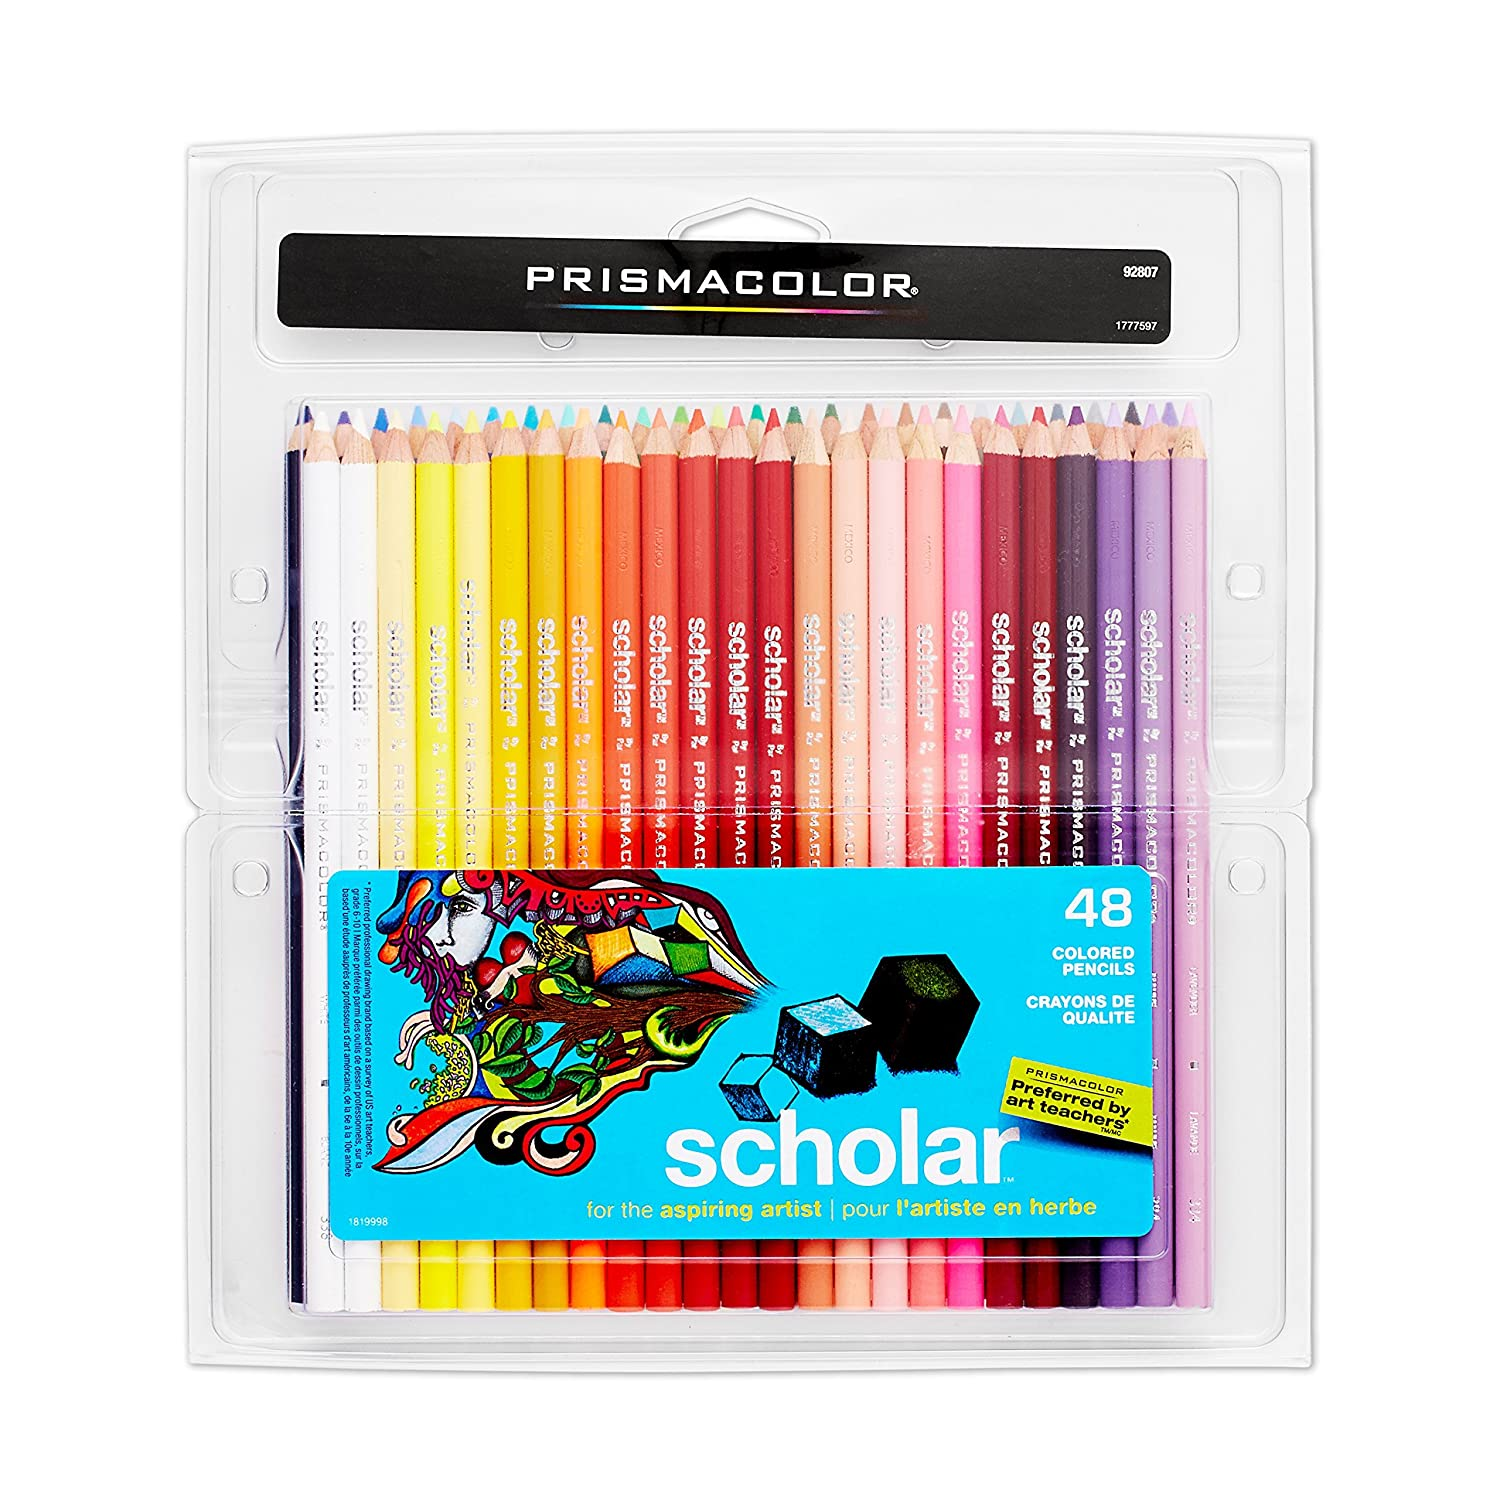 Art colored pencils - Prismacolor Premier Soft Core Colored Pencils Prismacolor Premier Verithin Colored Pencils Prismacolor Premier Art Stix Colored Pencils